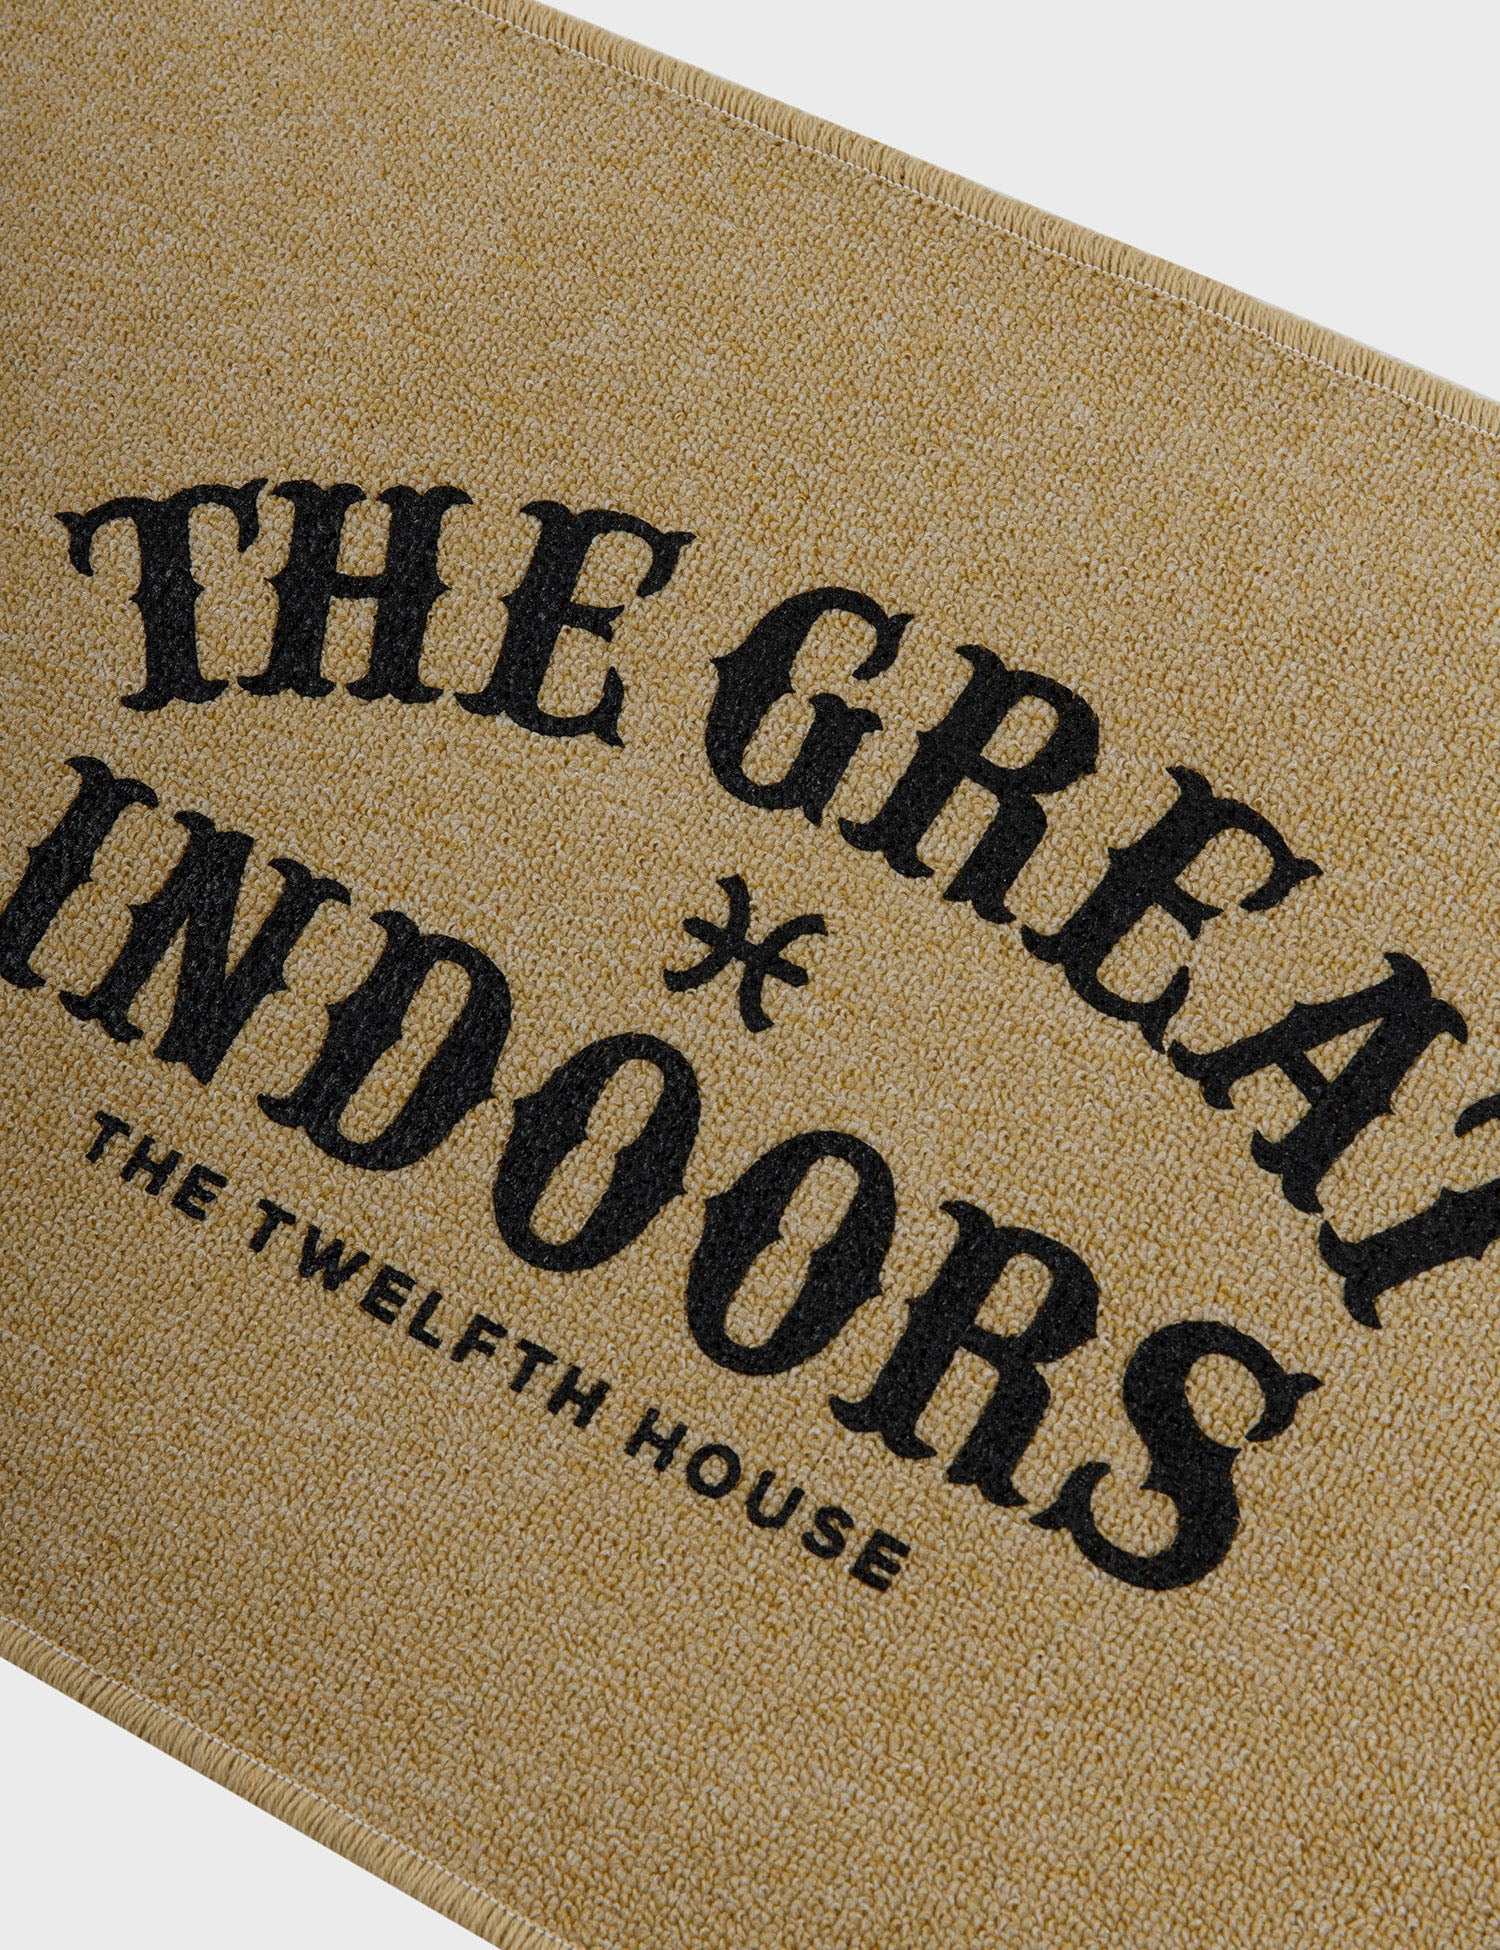 products/tth_2021_home-doormat_greatoutdoors_beige_02.jpg